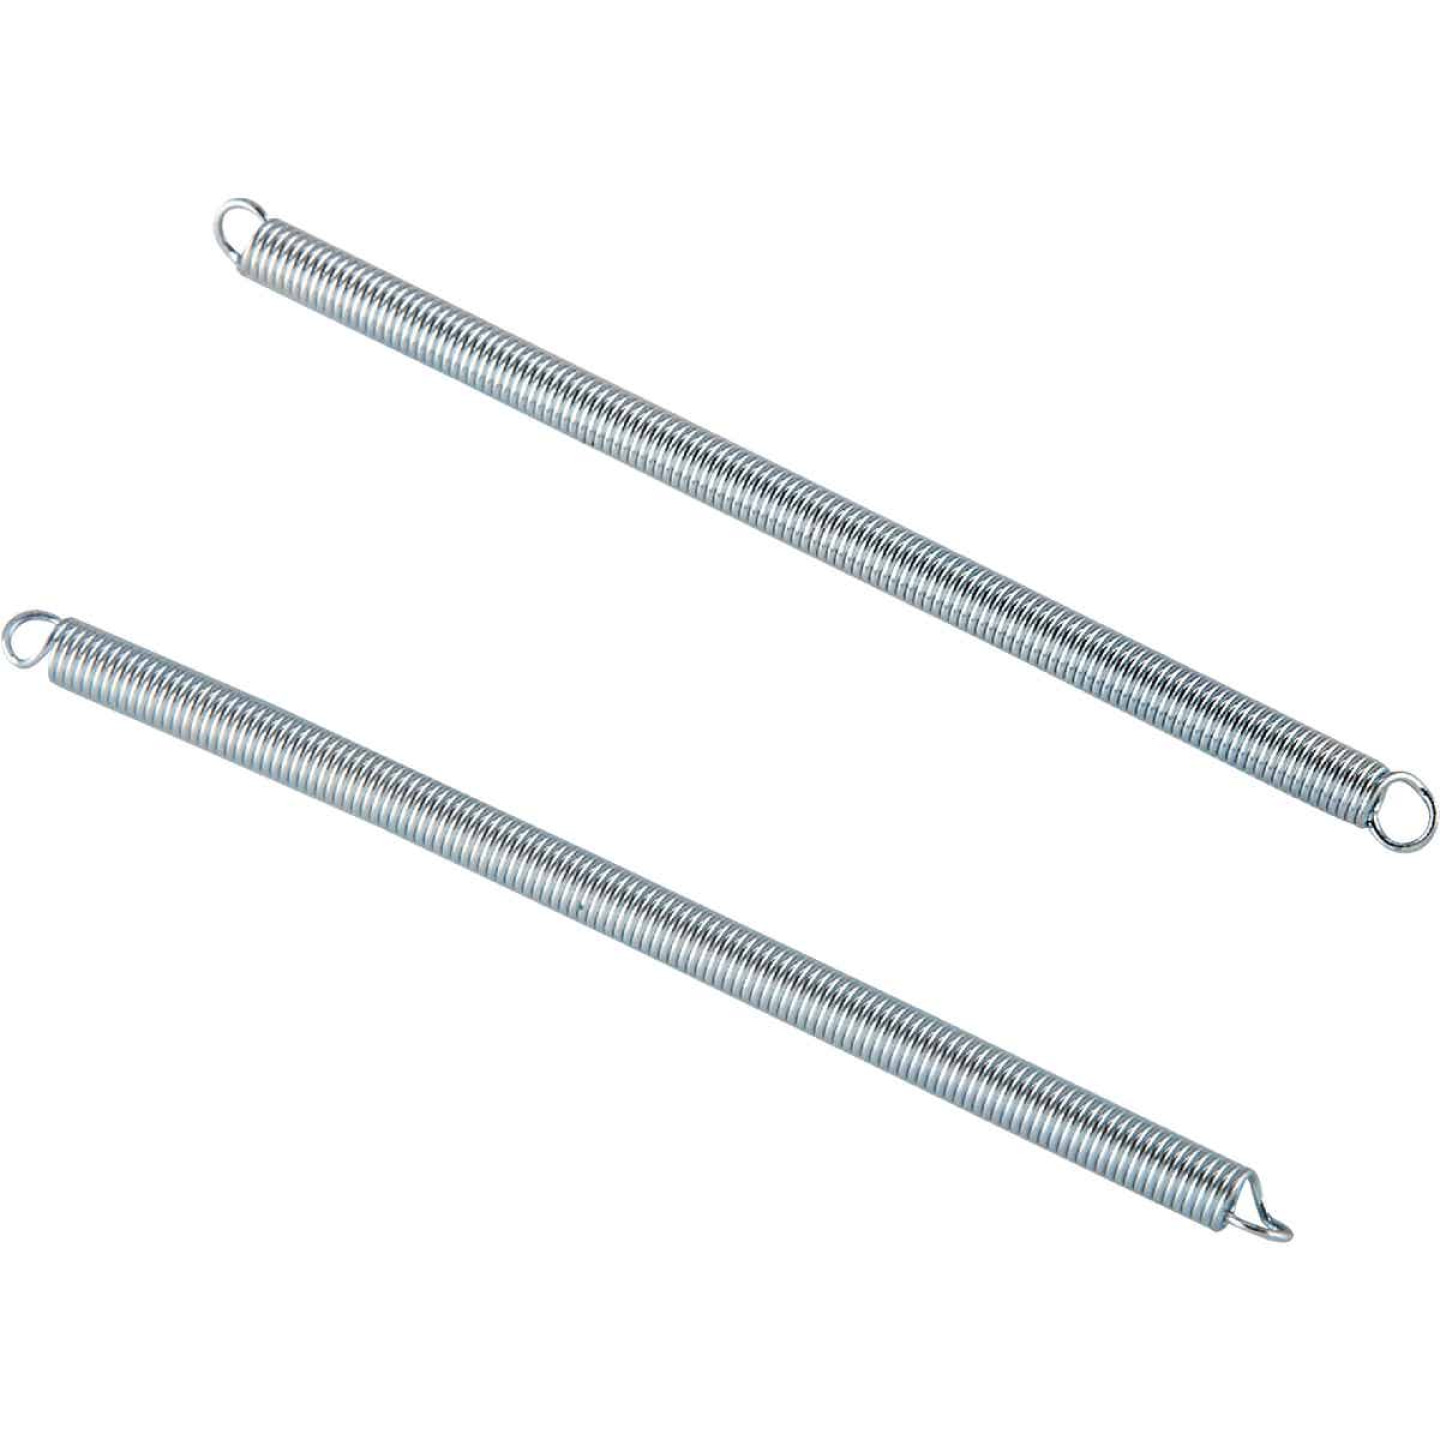 Century Spring 8-1/2 In. x 7/8 In. Extension Spring (1 Count) Image 1